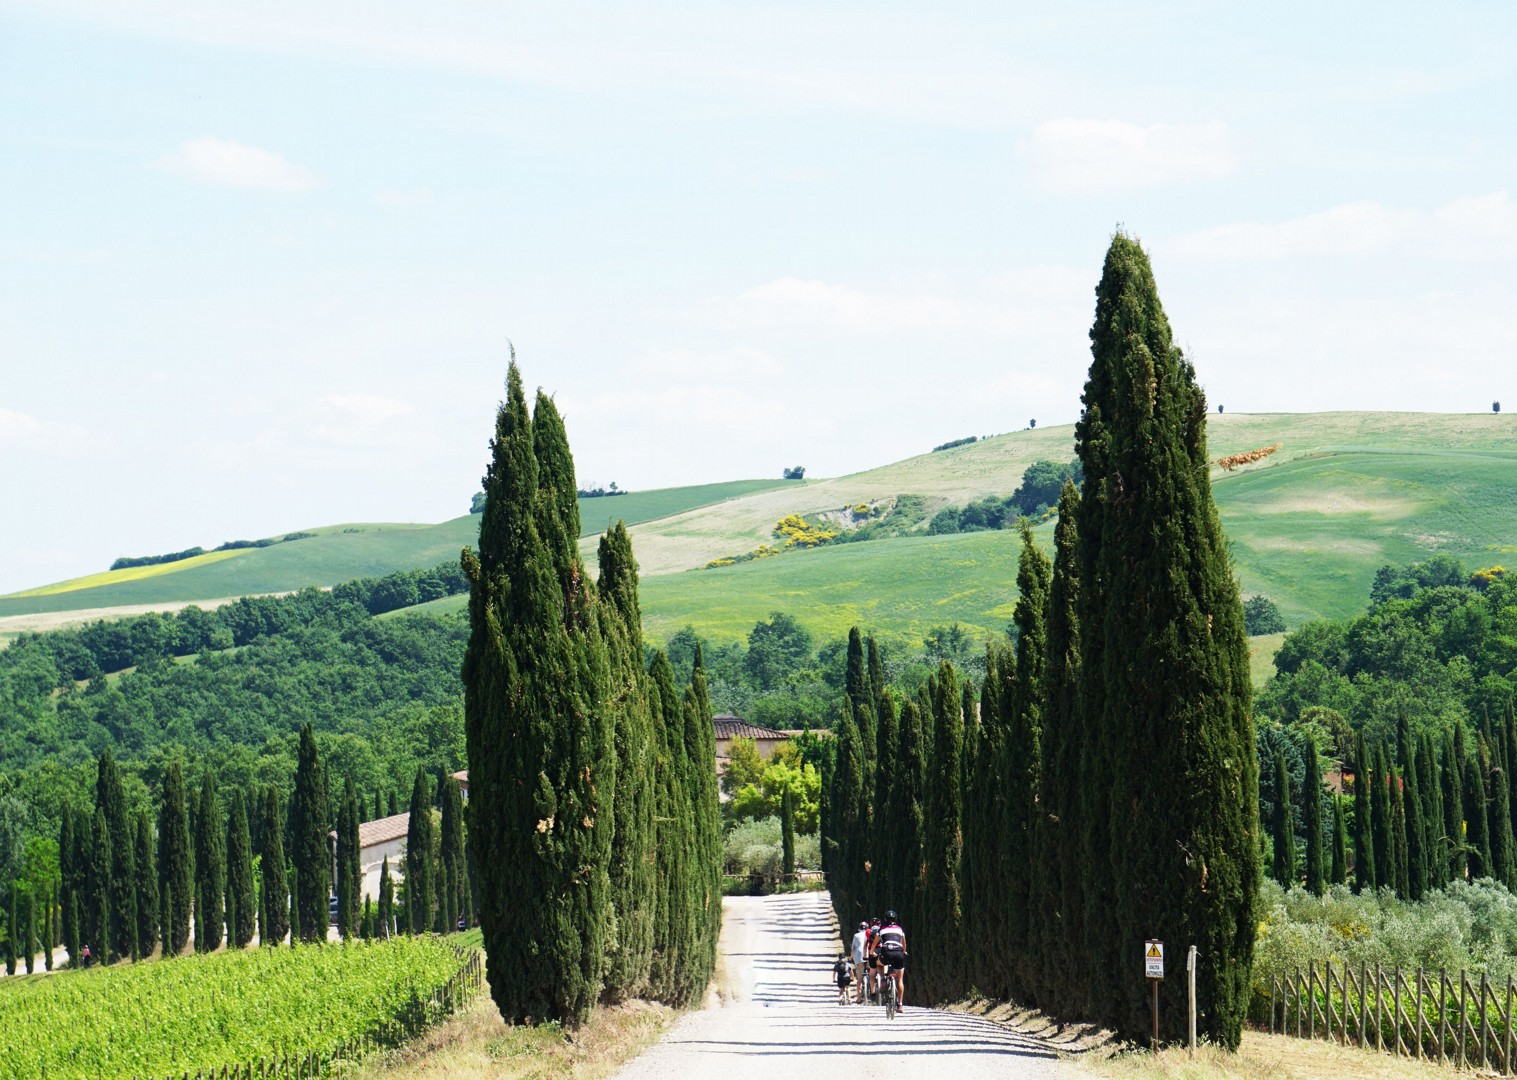 groves-italy-tuscany-cycling-holiday.jpg - Italy - Tuscany Tourer - Guided Road Cycling Holiday - Road Cycling